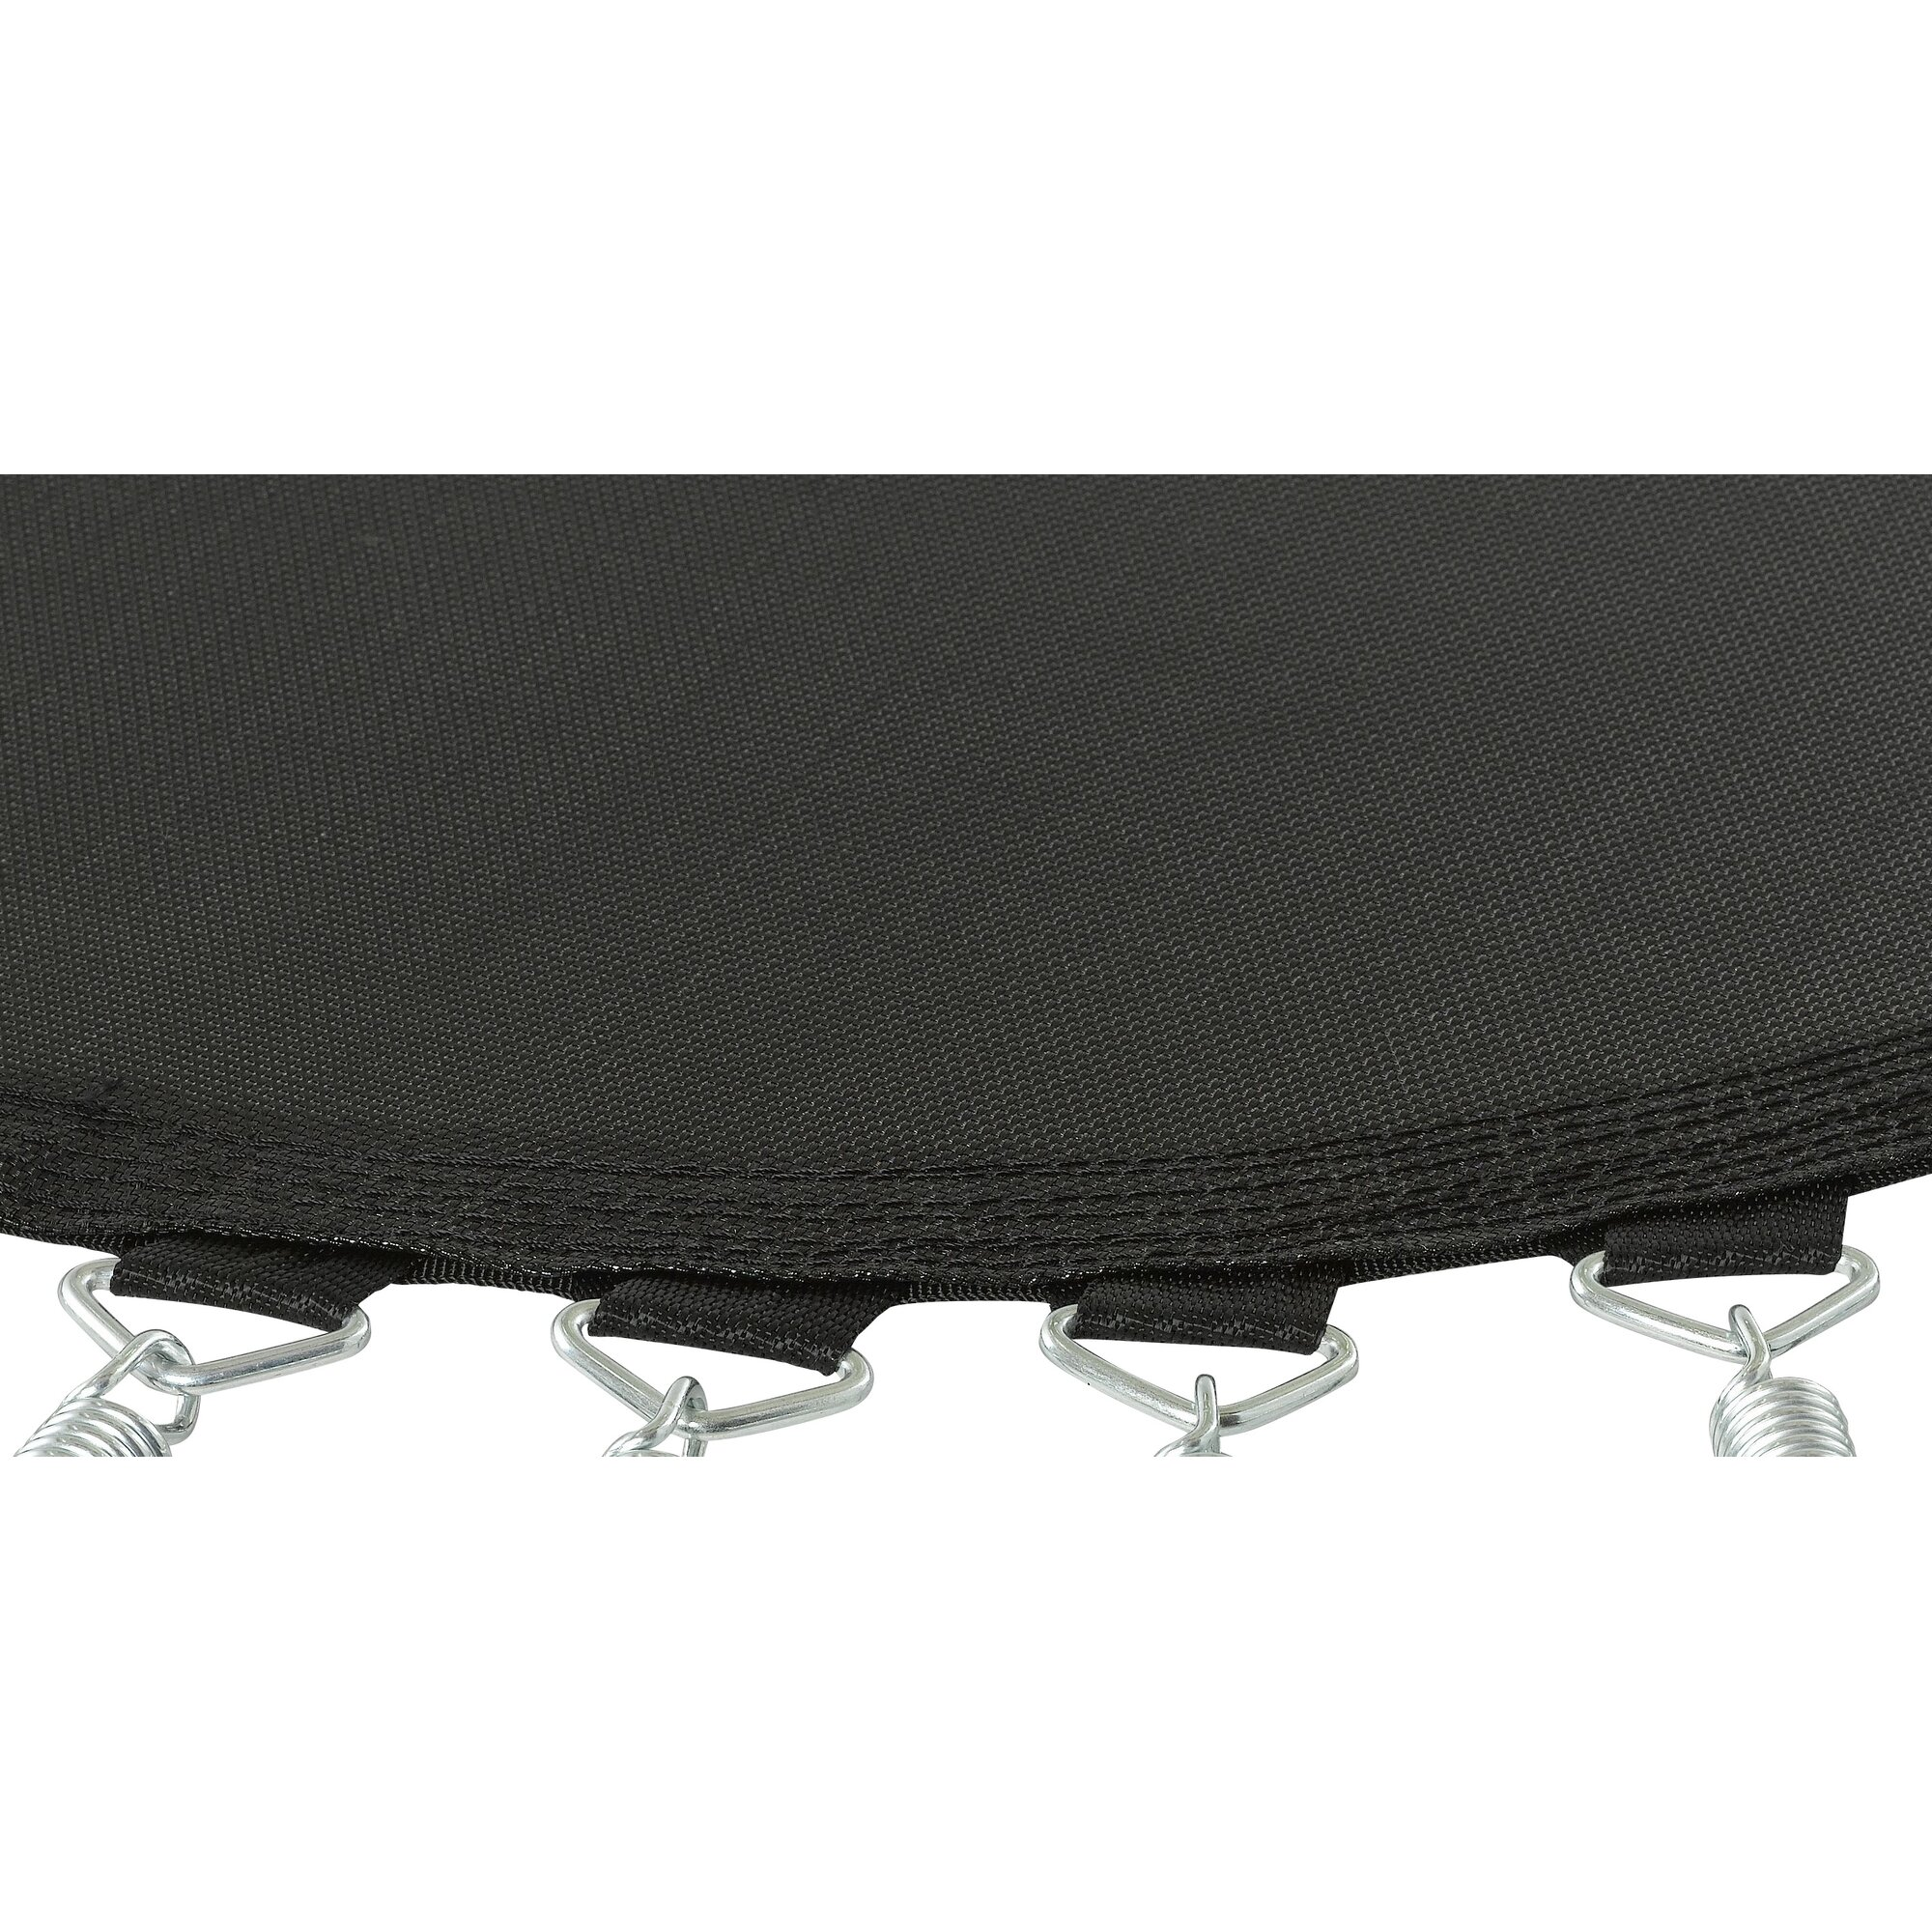 Upper Bounce Jumping Surface For 8' Trampoline With 56 V